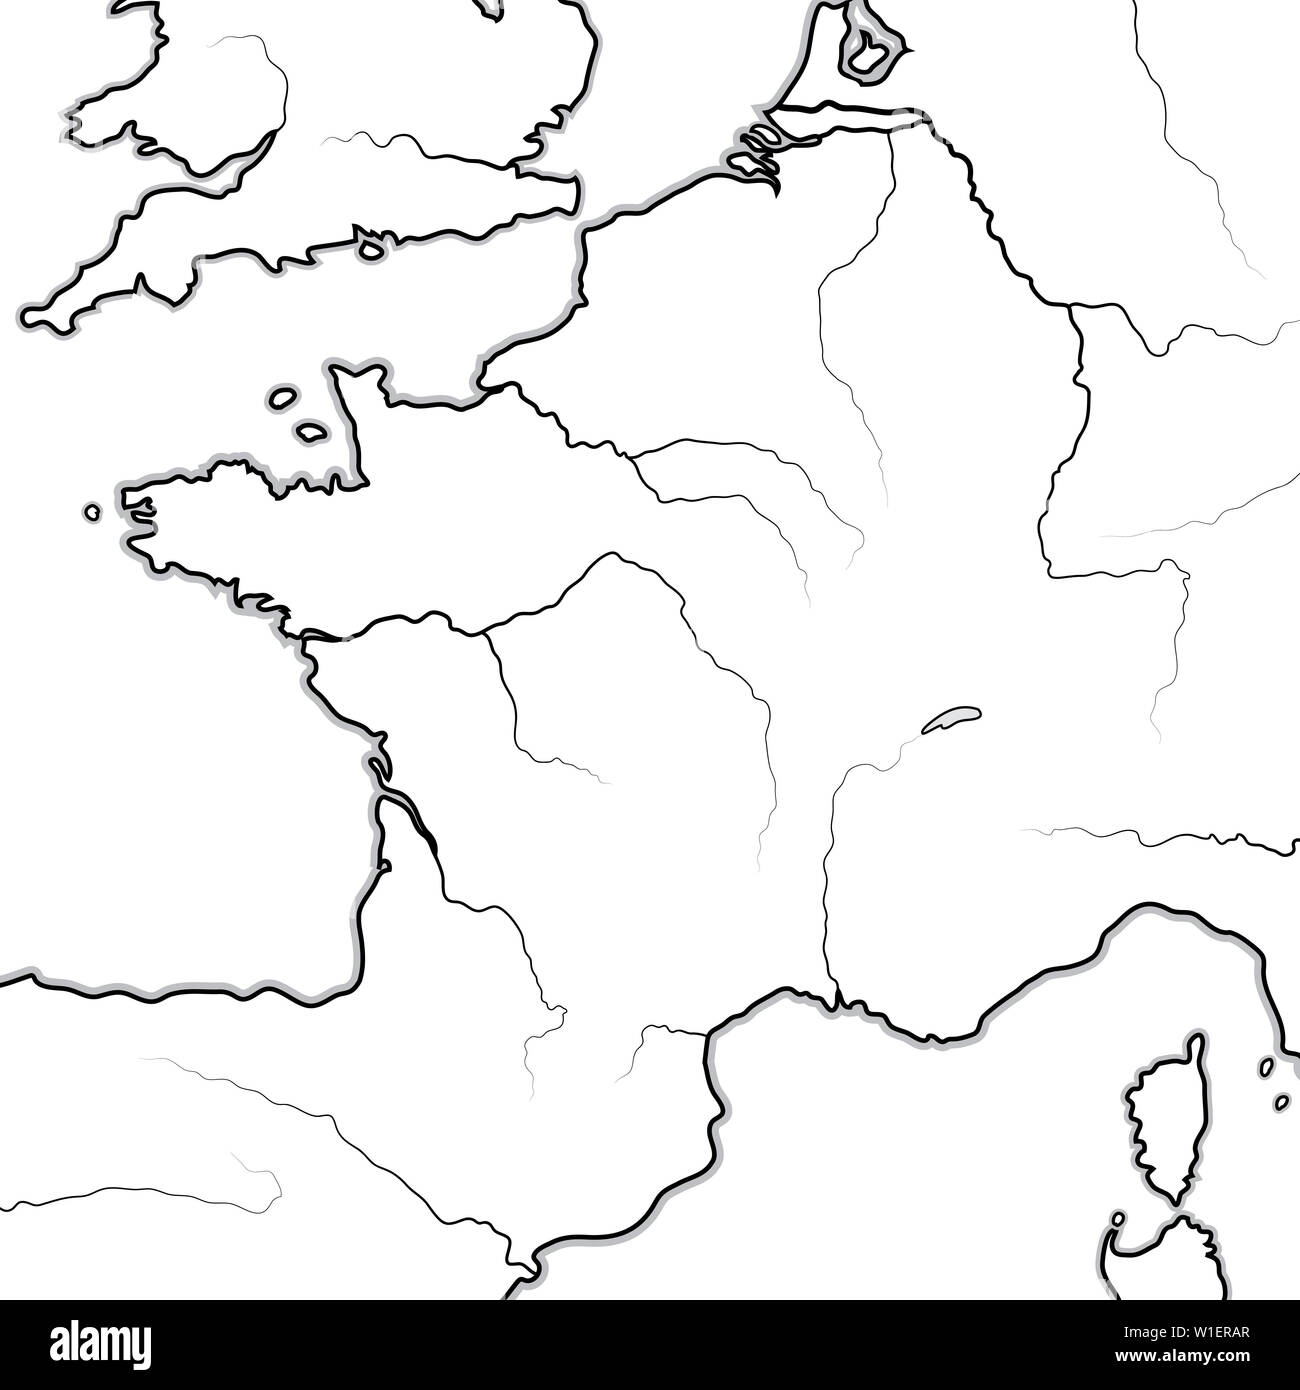 Atlantikwall Karte.Normandie Map Stock Photos Normandie Map Stock Images Alamy